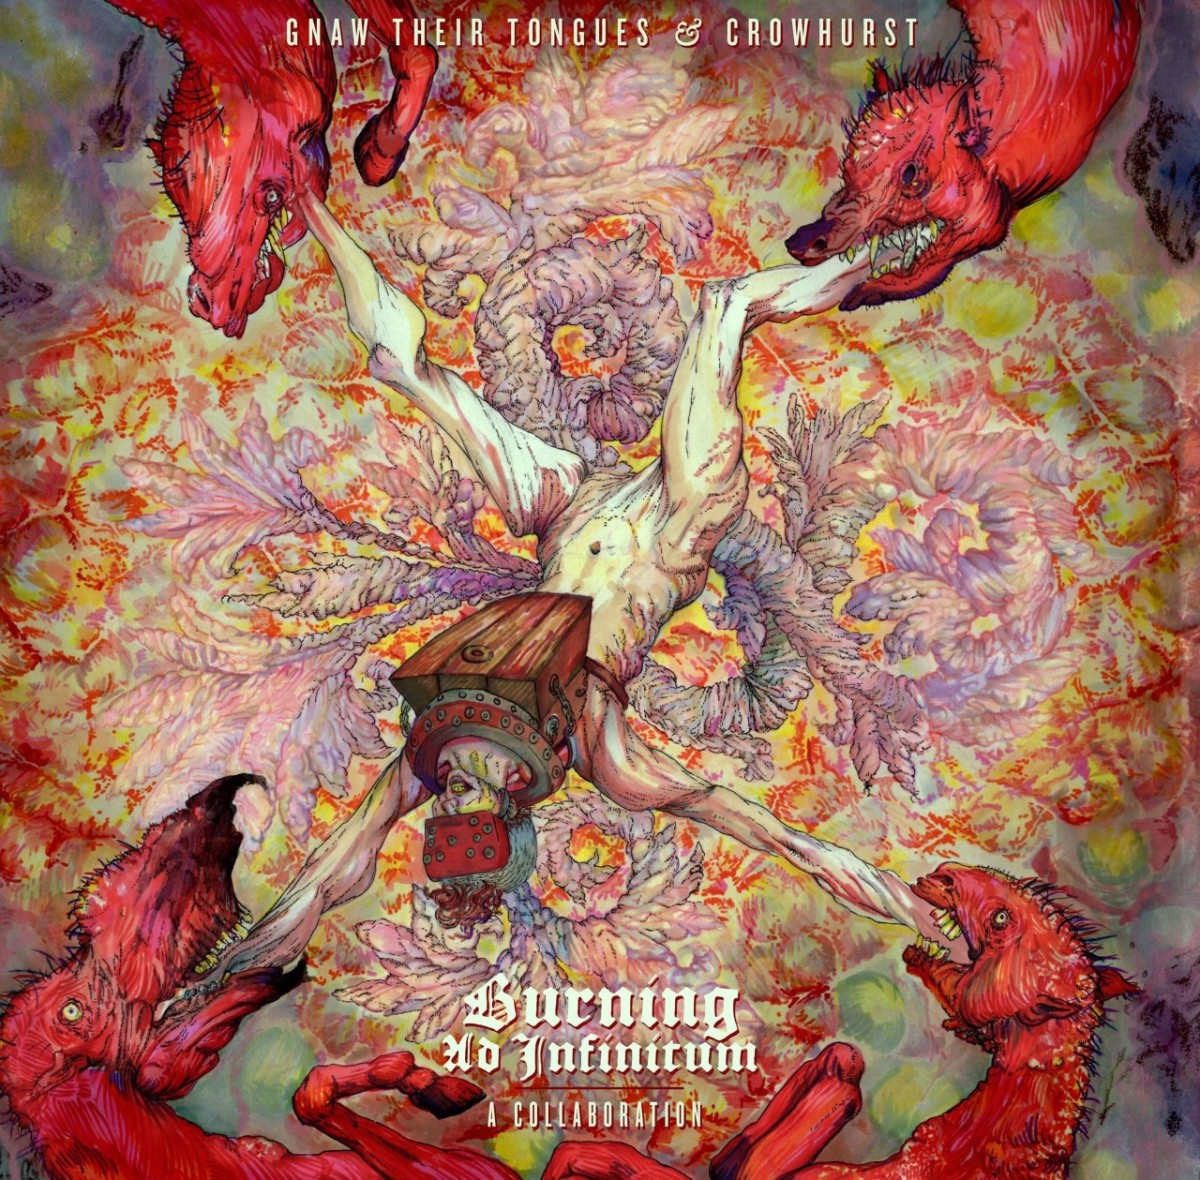 Gnaw Their Tongues & Crowhurst – Burning Ad Infinitum: A Collaboration (Review)